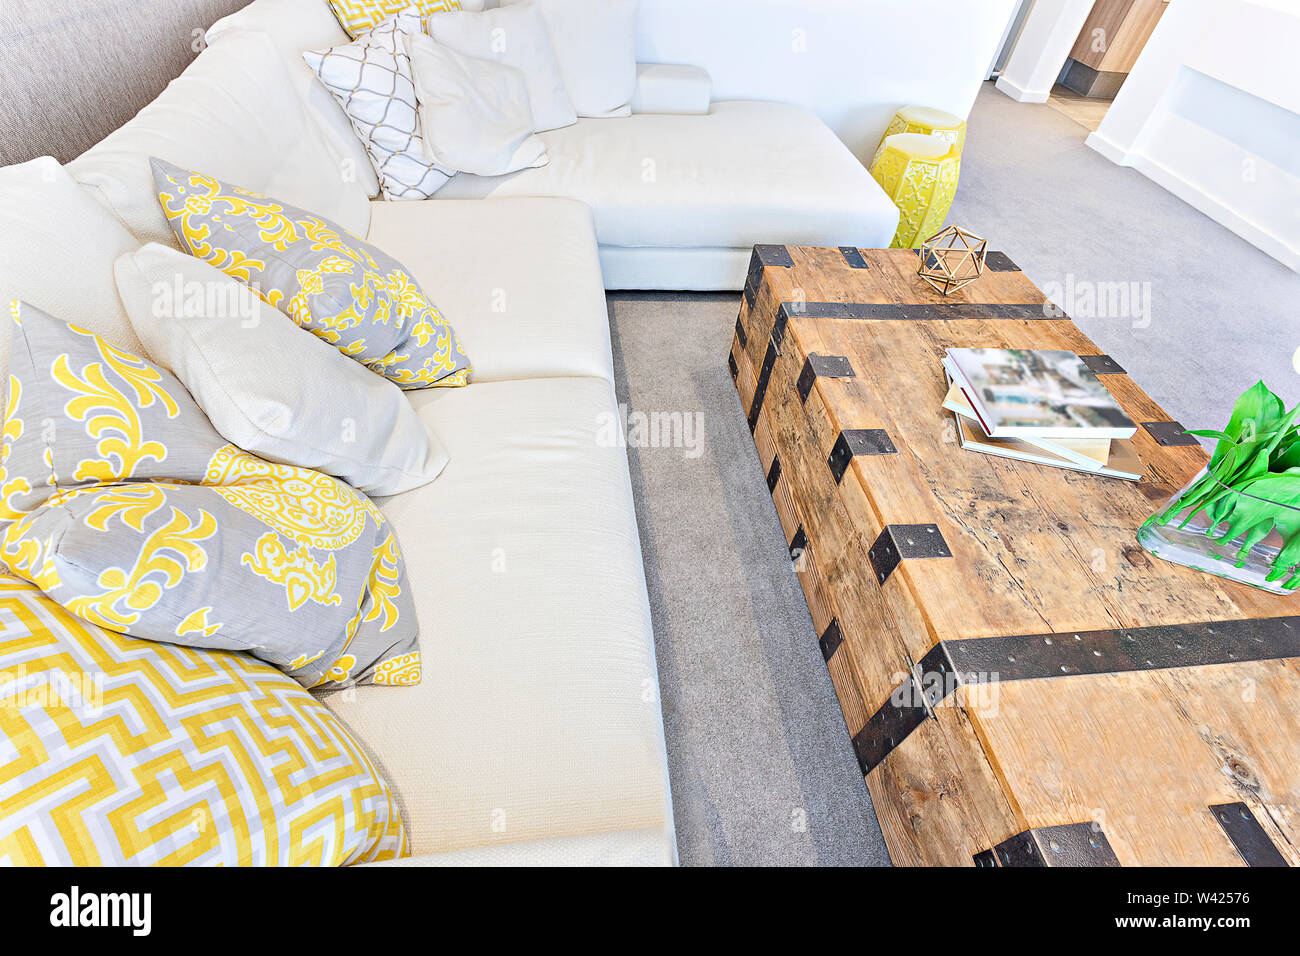 Astonishing Pillows On A White Sofa With A Wooden Table Box Some Books Squirreltailoven Fun Painted Chair Ideas Images Squirreltailovenorg